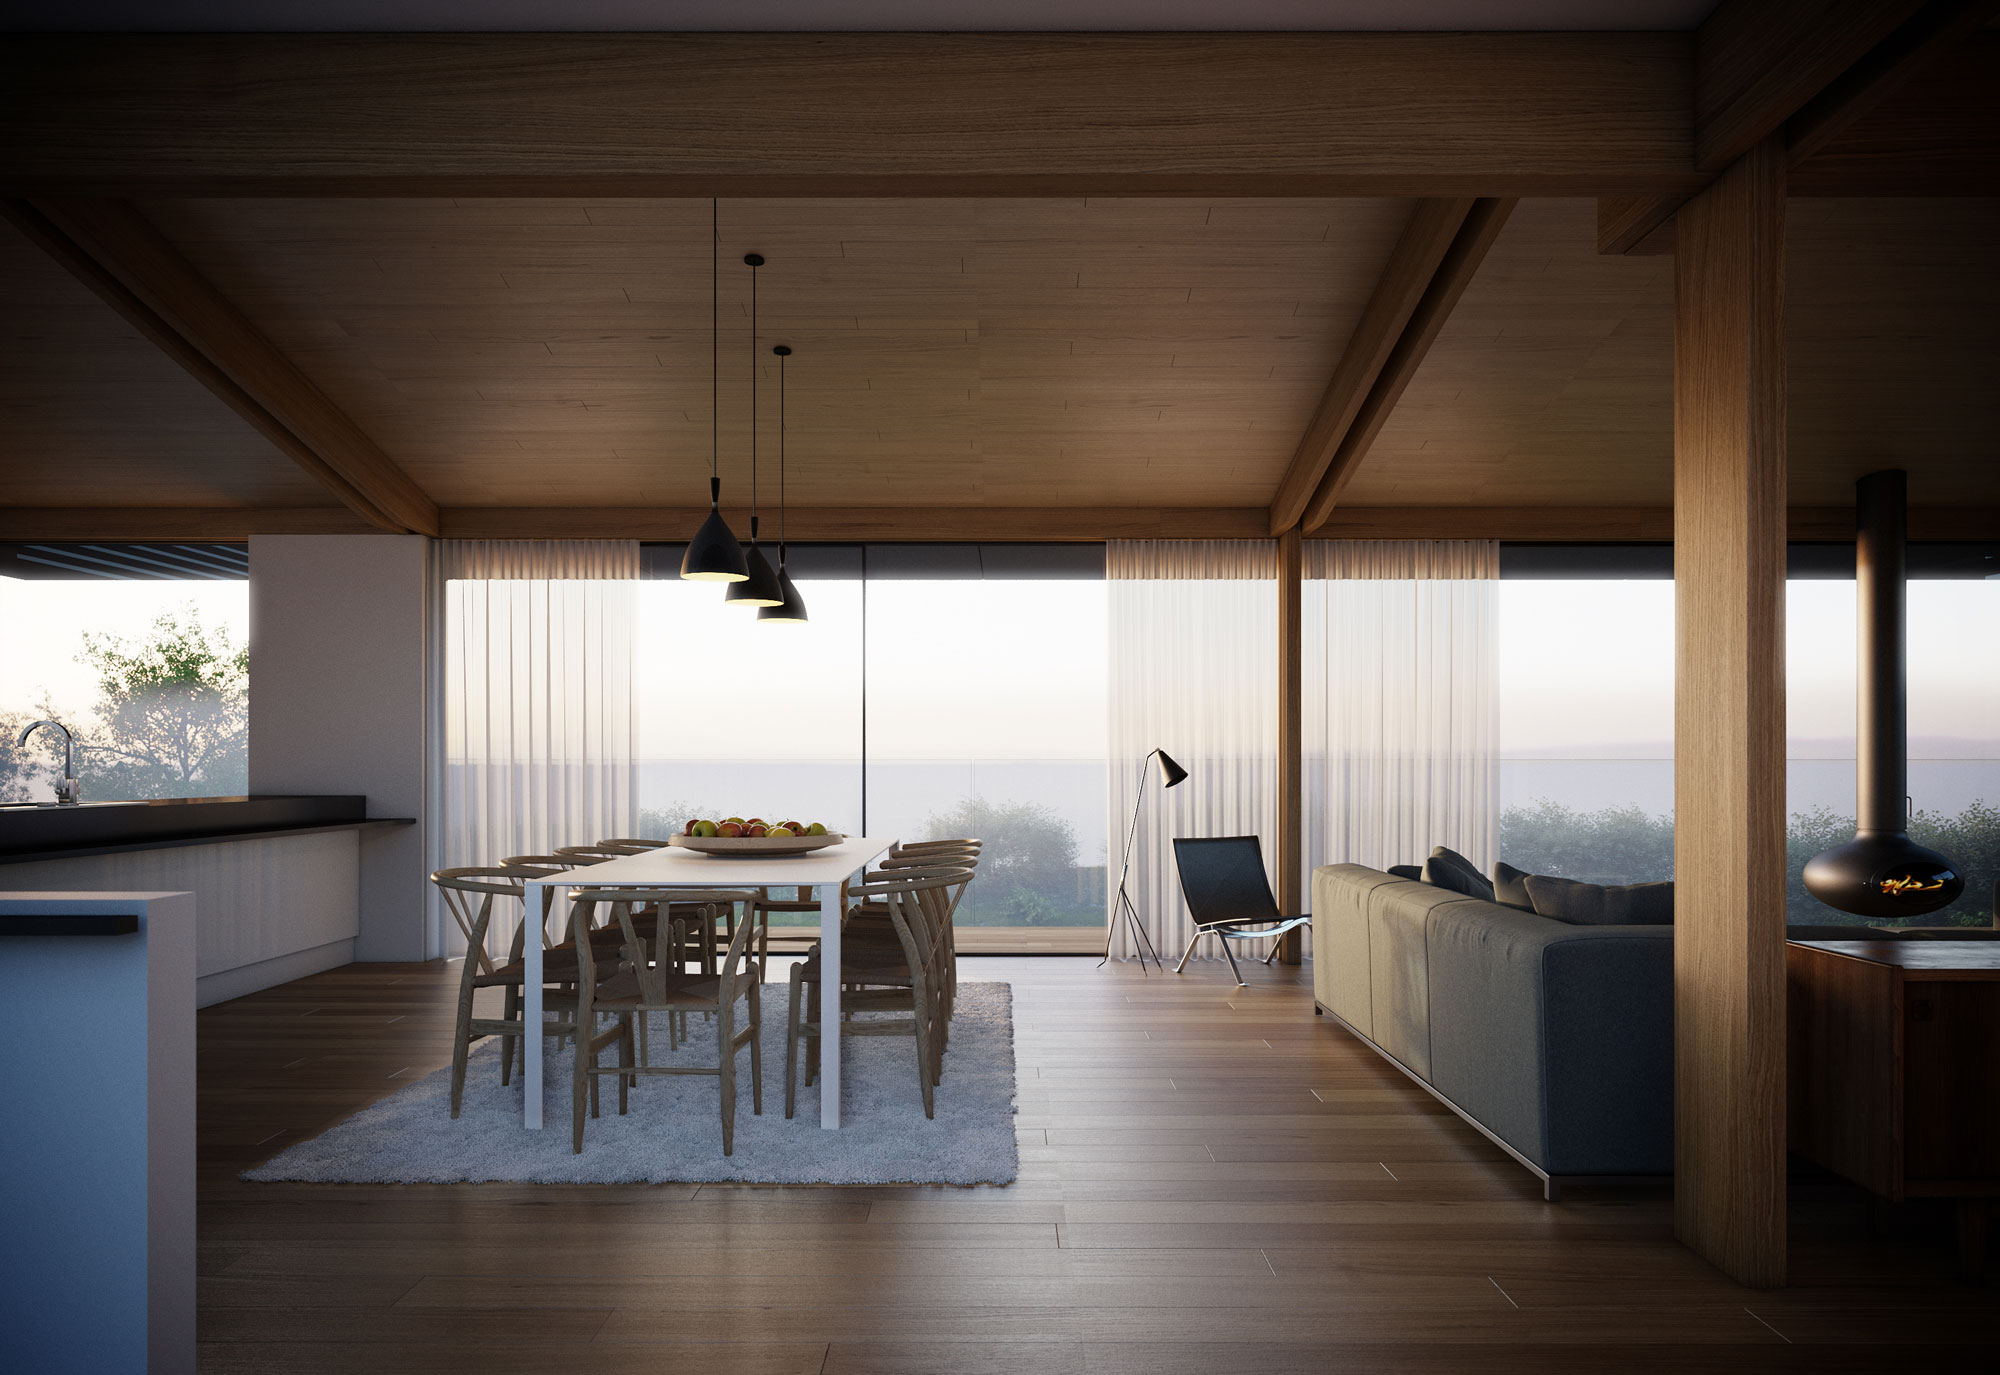 Dining Table, Rug, Floor-to-Ceiling Windows, Home on the Gower Peninsula in South Wales